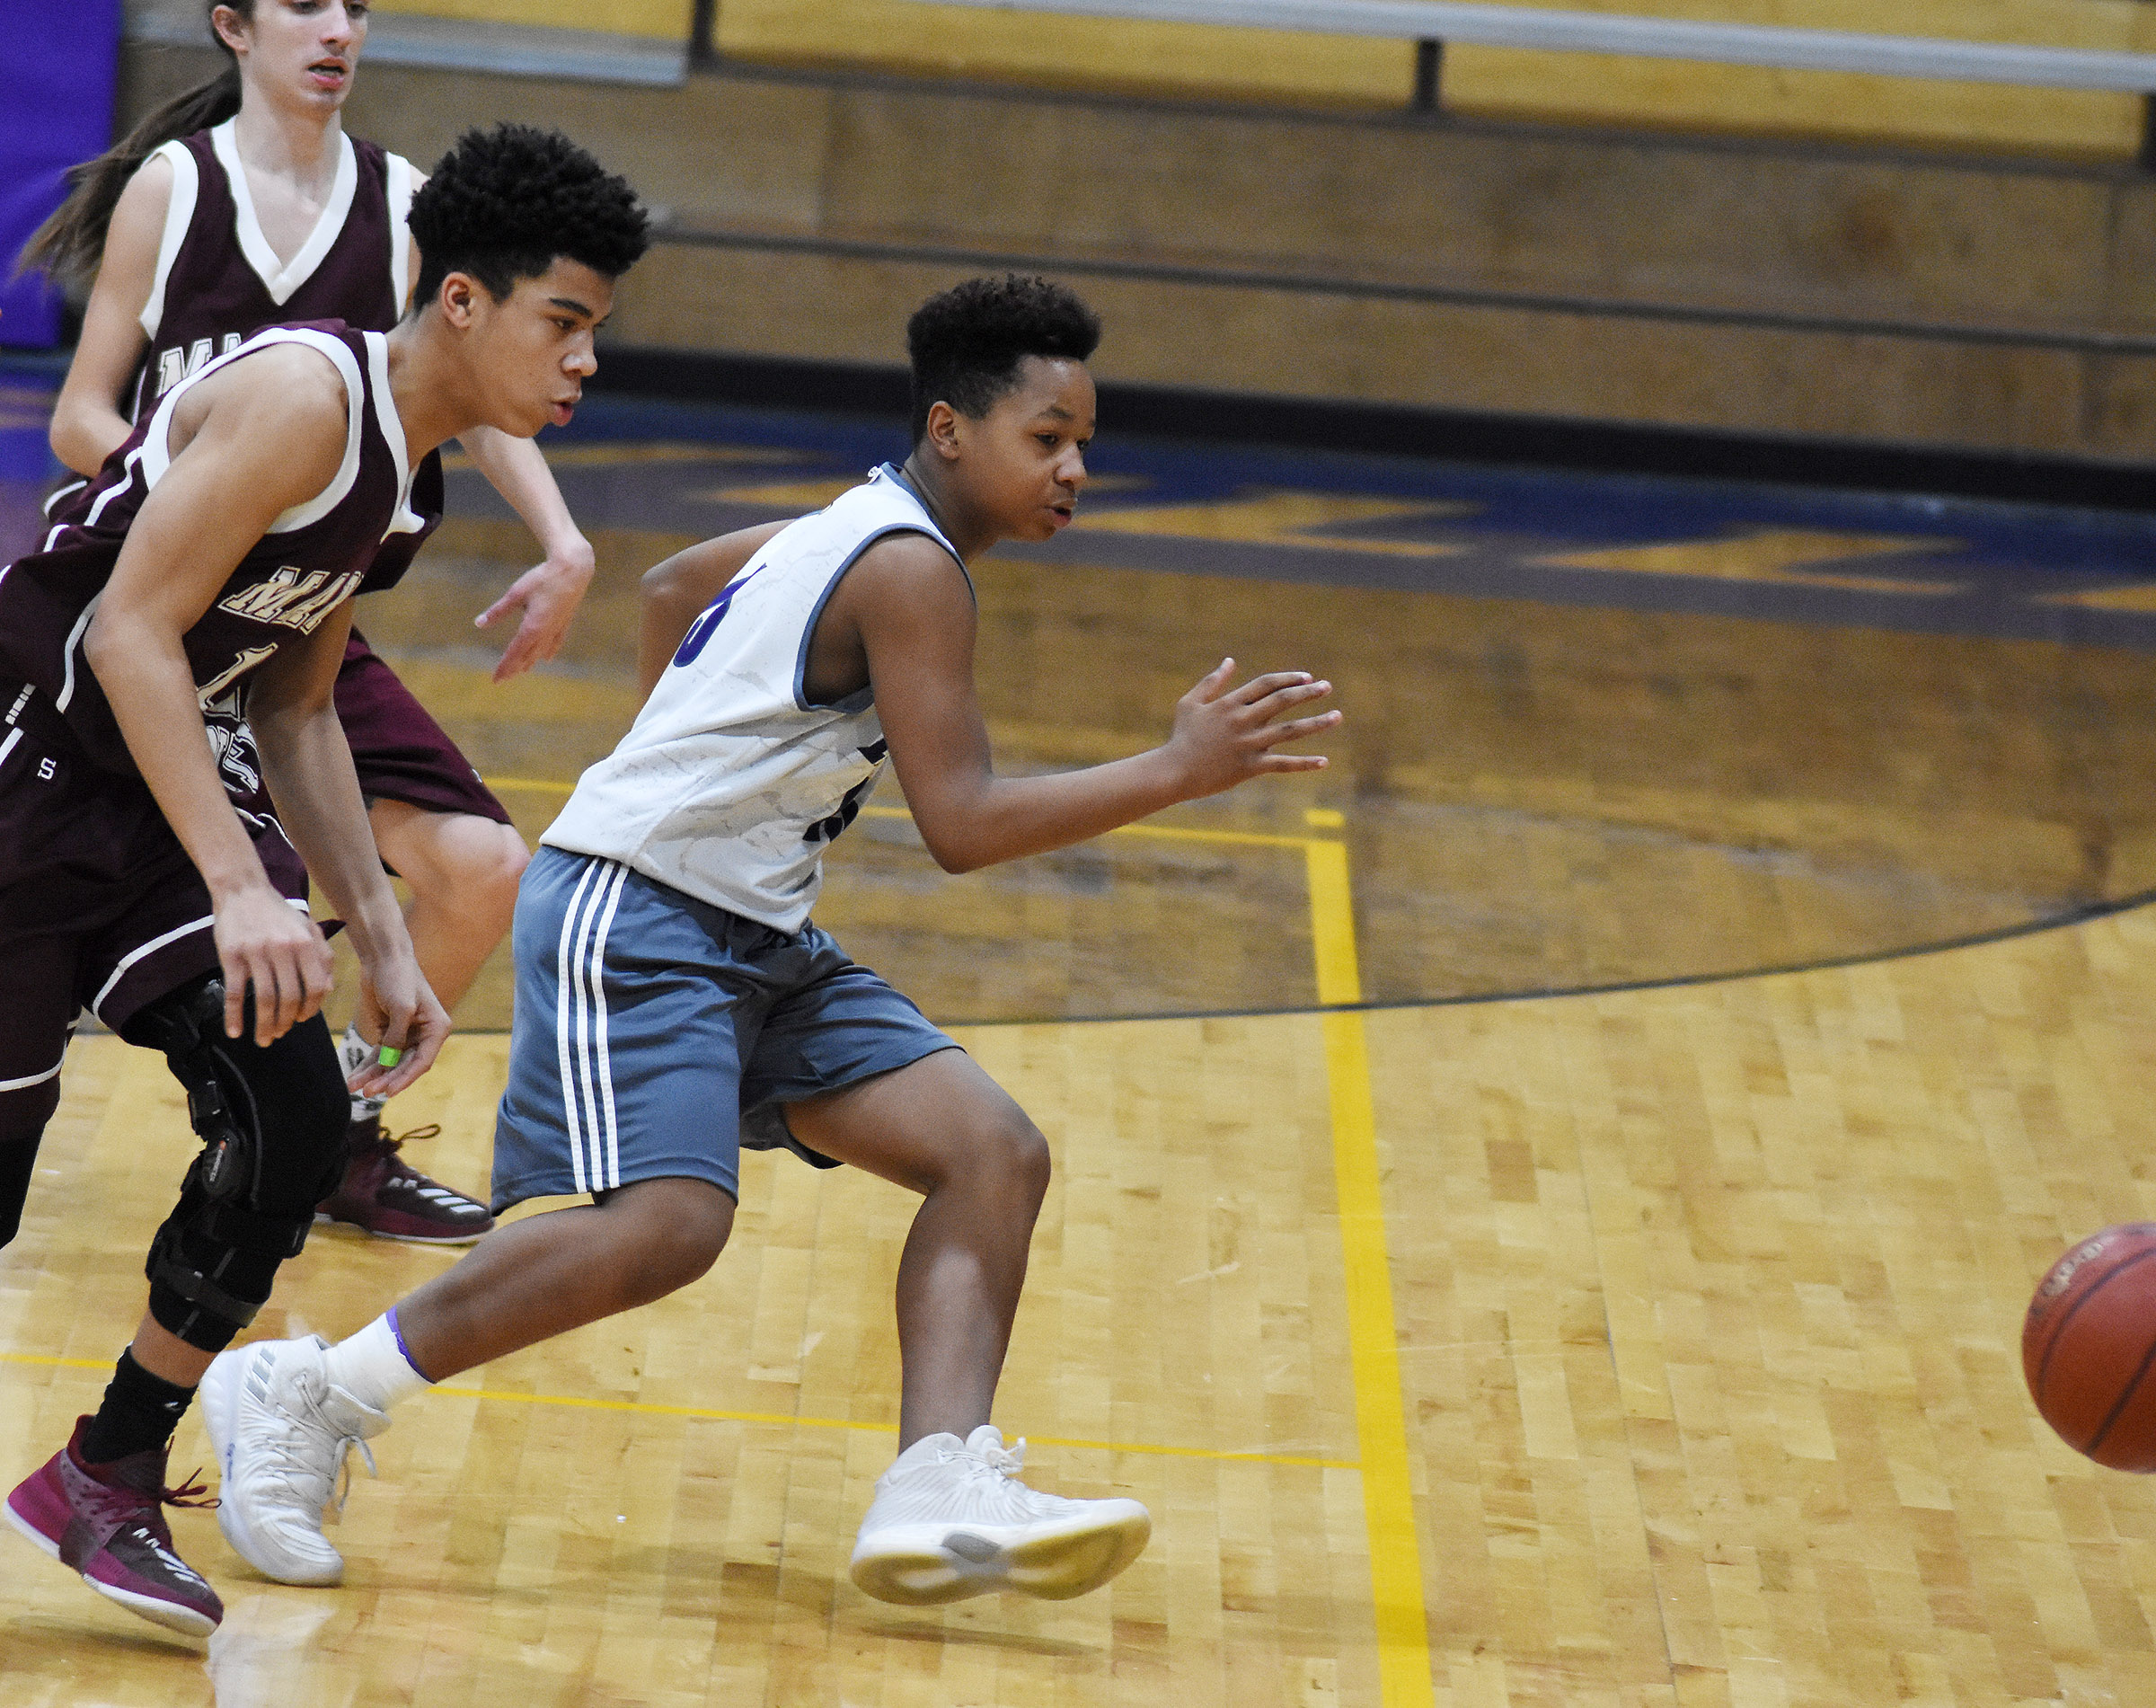 Campbellsville Middle School seventh-grader Deondre Weathers goes for the ball.